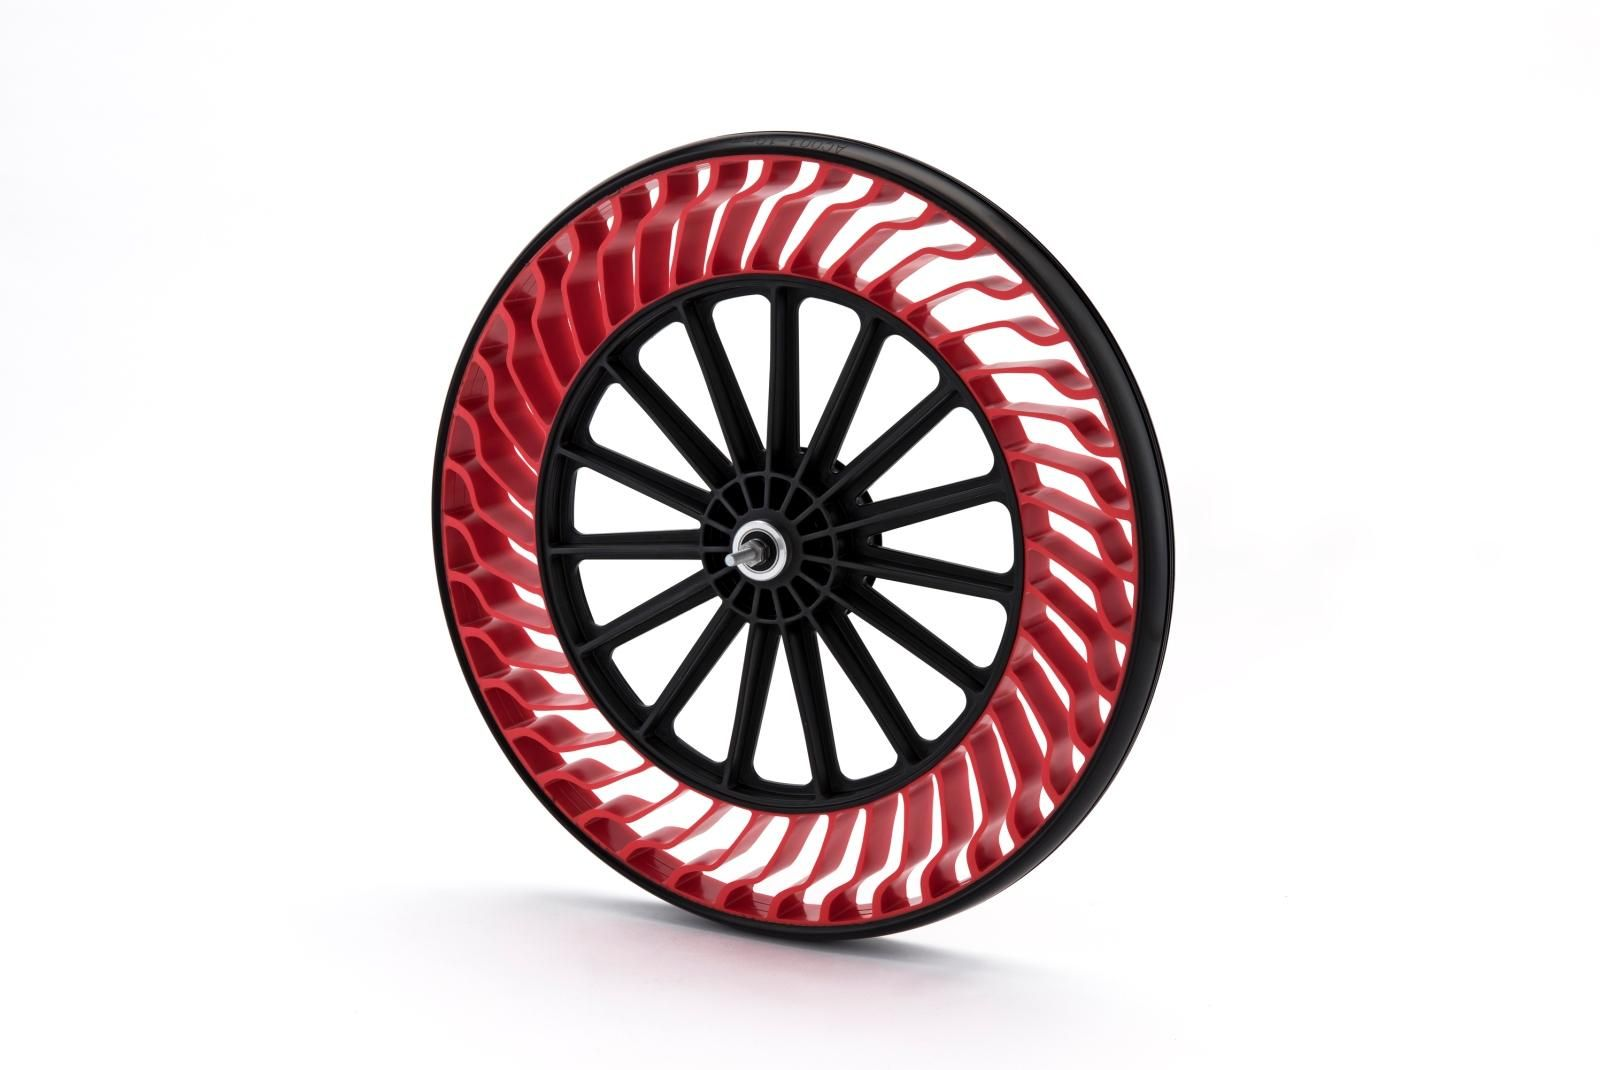 Clever Bicycle with Air Free Tires | Fahrräder